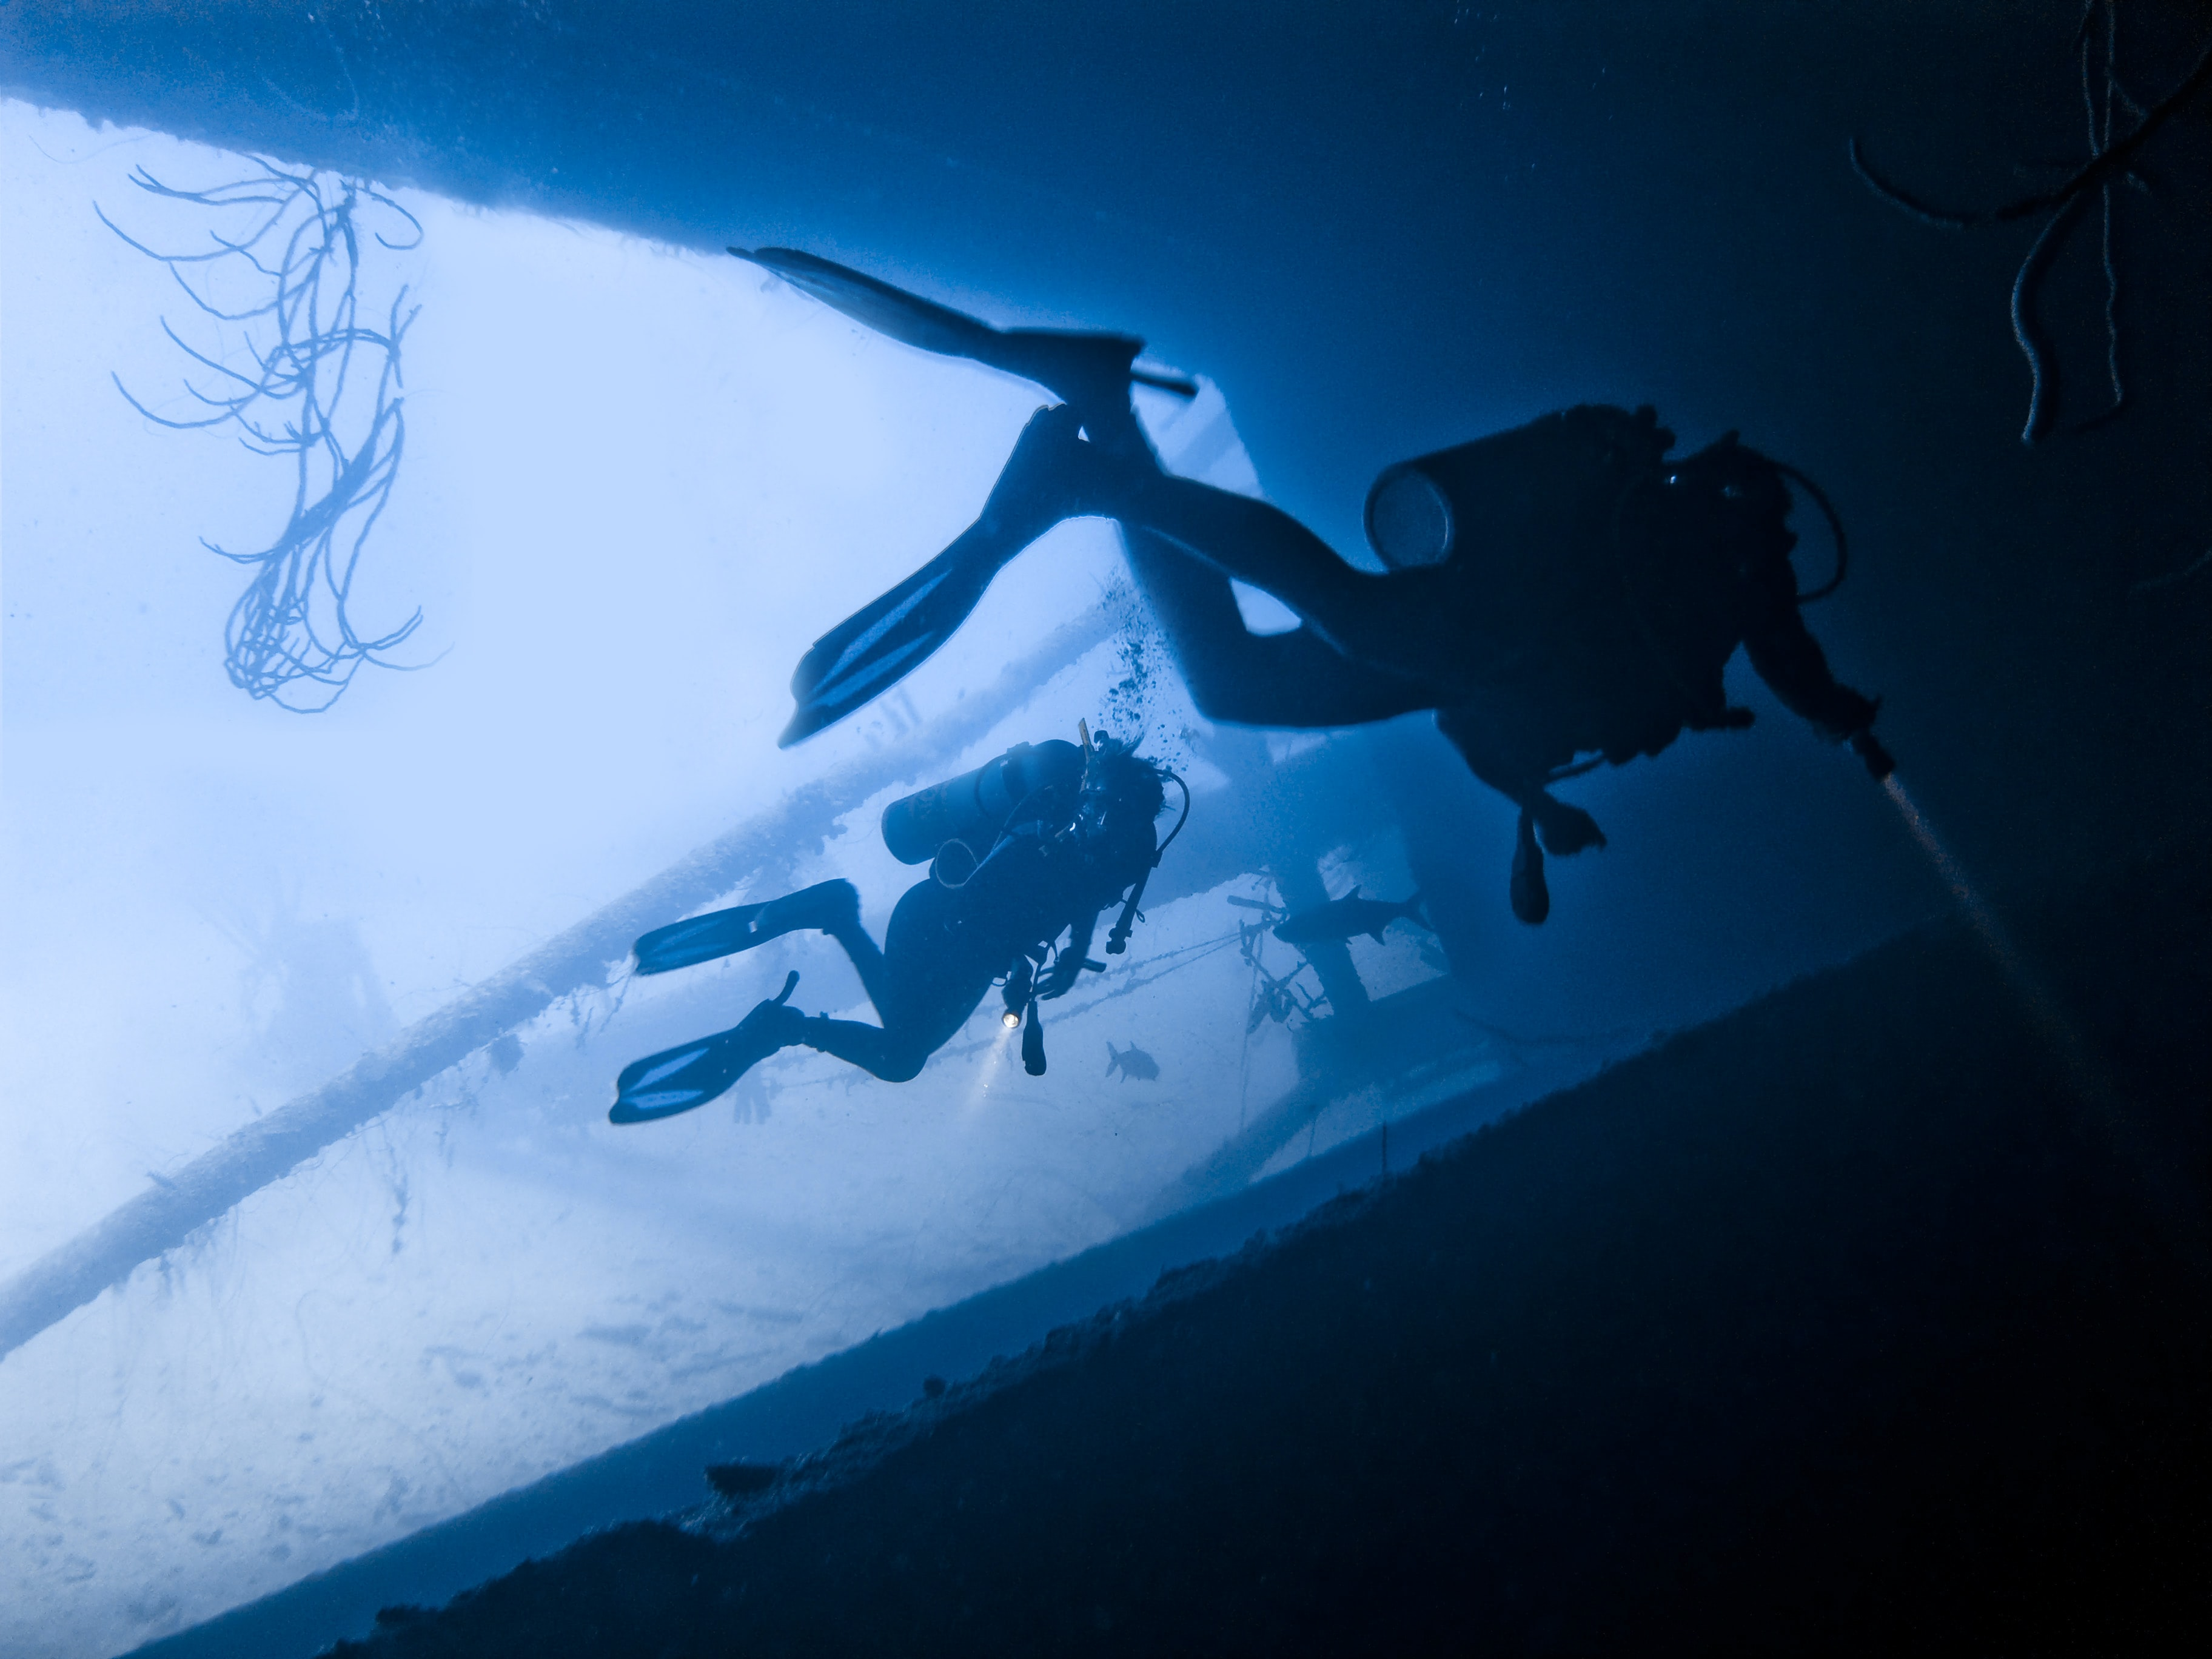 two person scuba diving in water